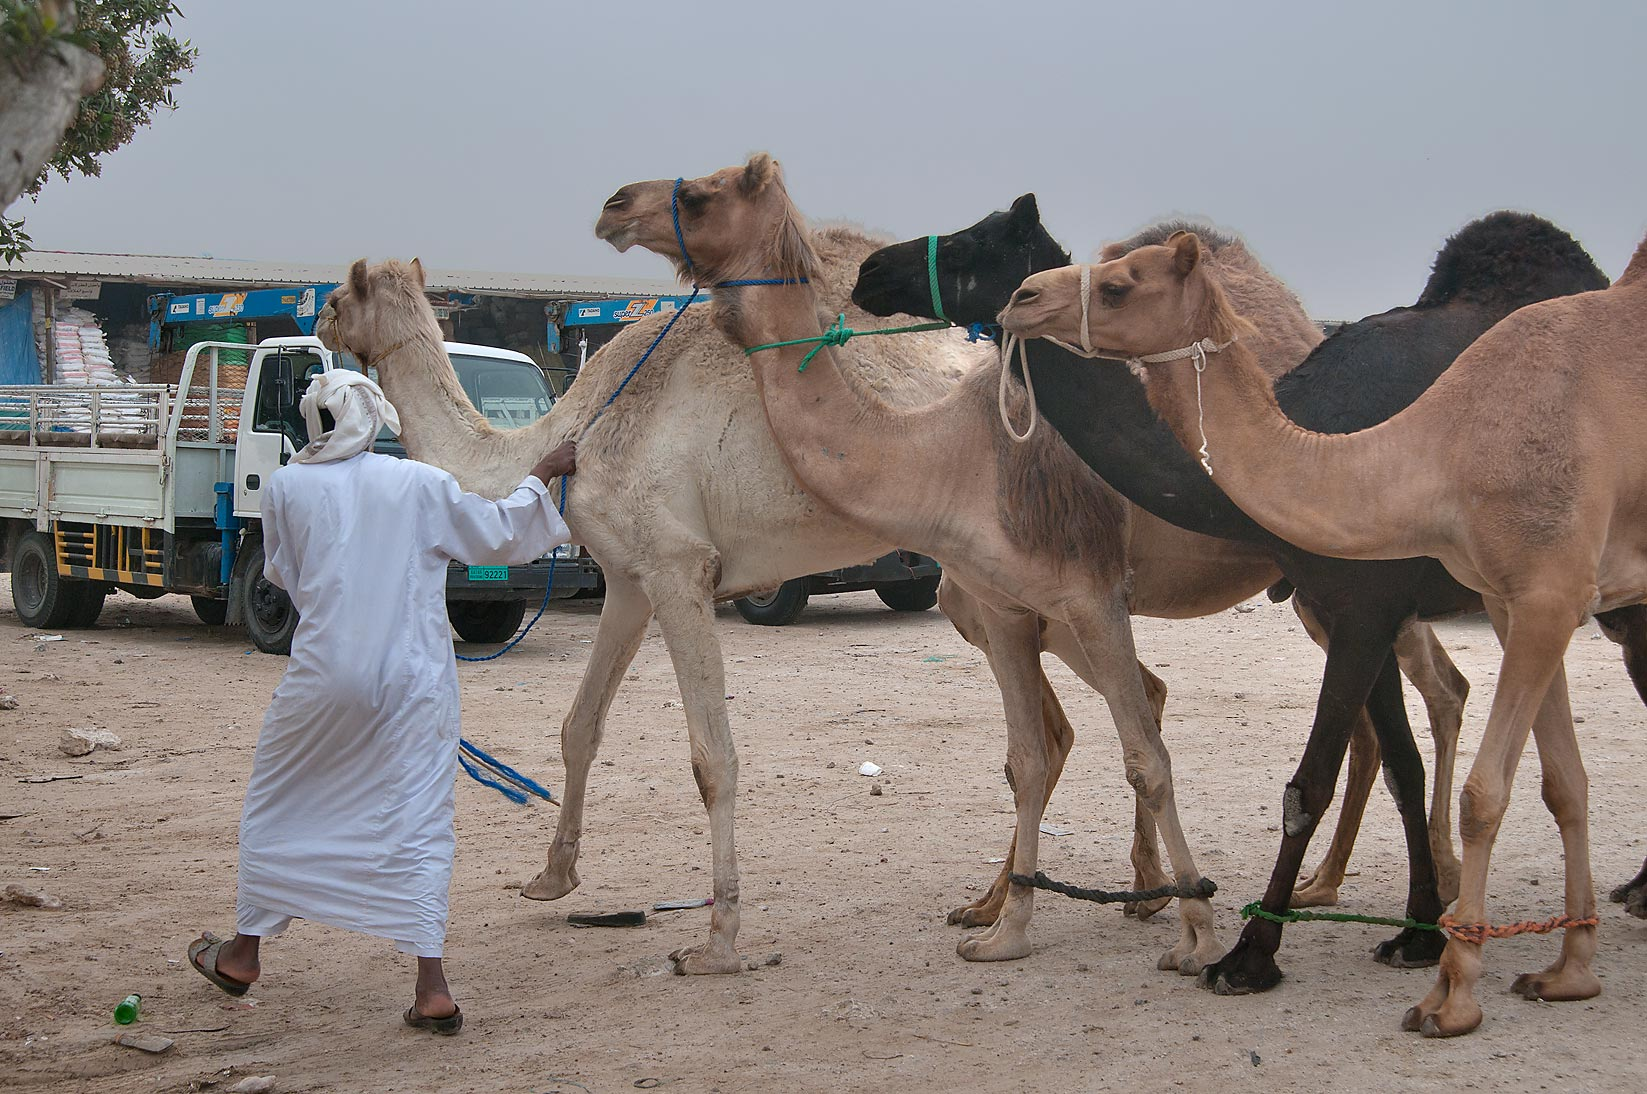 A person with four camels in Camel Market (Souq), racing section. Doha, Qatar